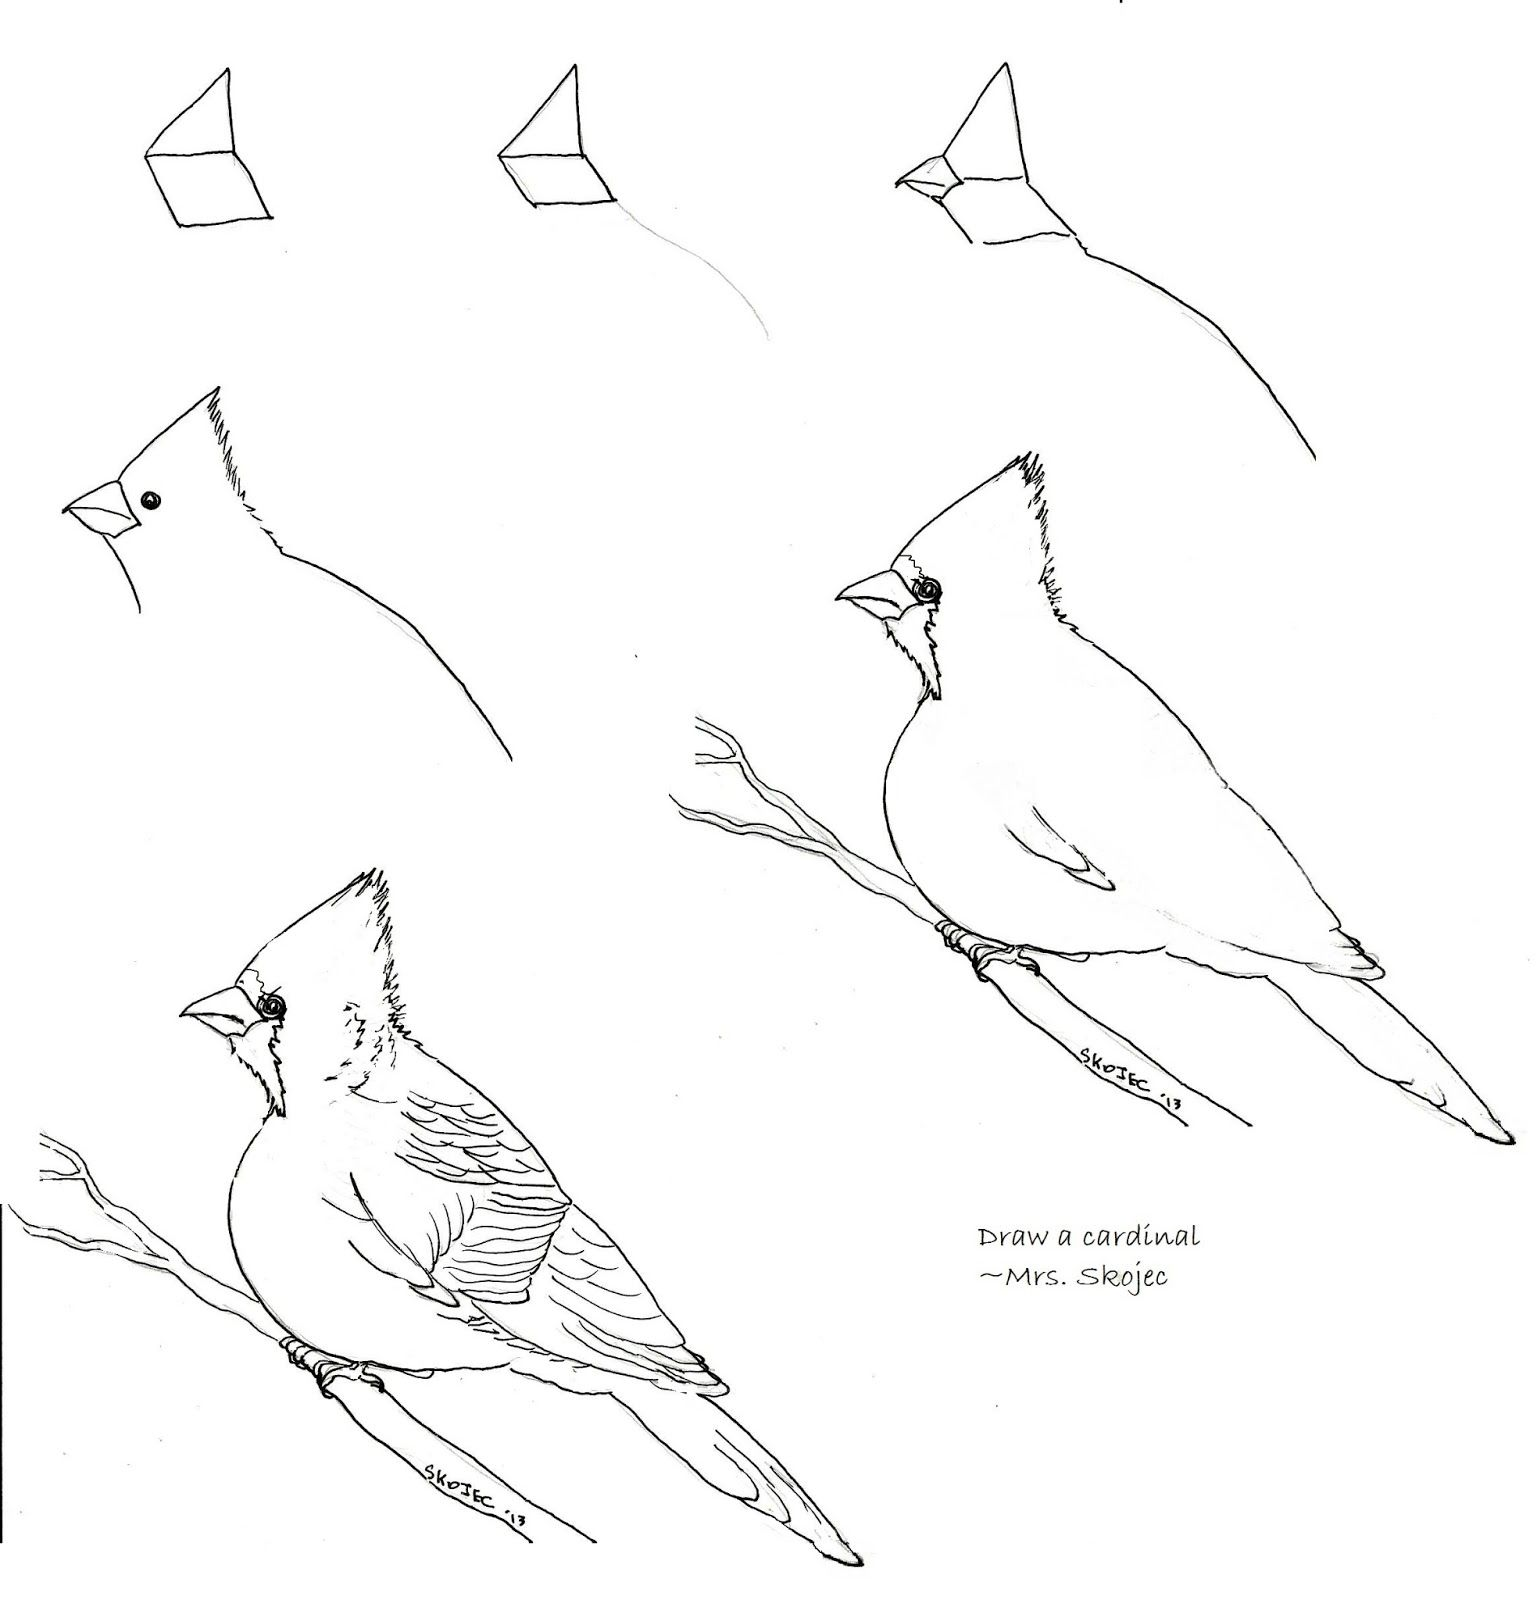 how to draw a california quail step by step 33 best images about bird art on pinterest watercolors a california quail to how by step draw step